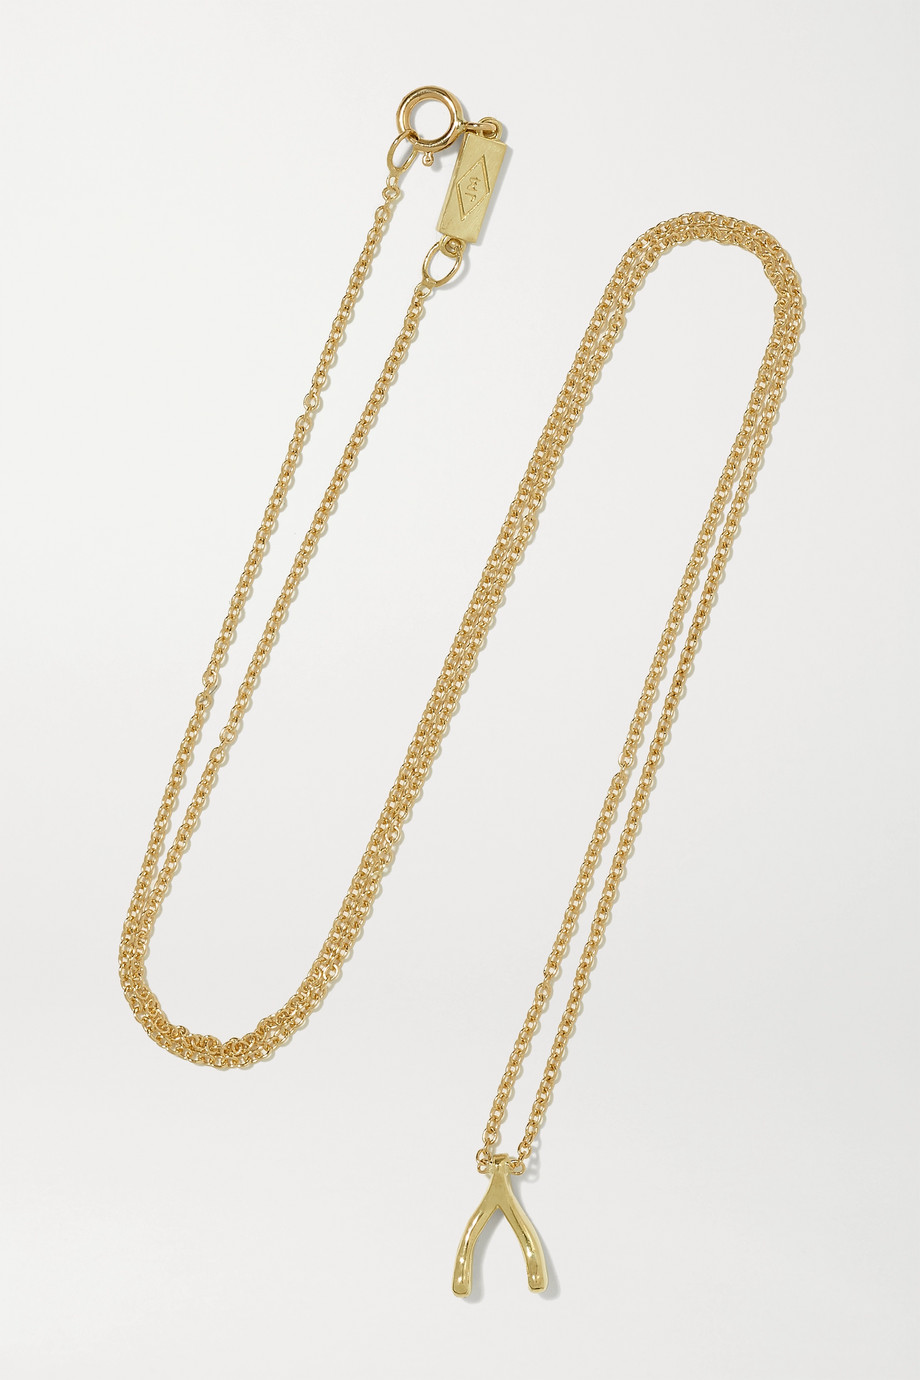 JENNIFER MEYER Mini Wishbone 18-karat gold necklace